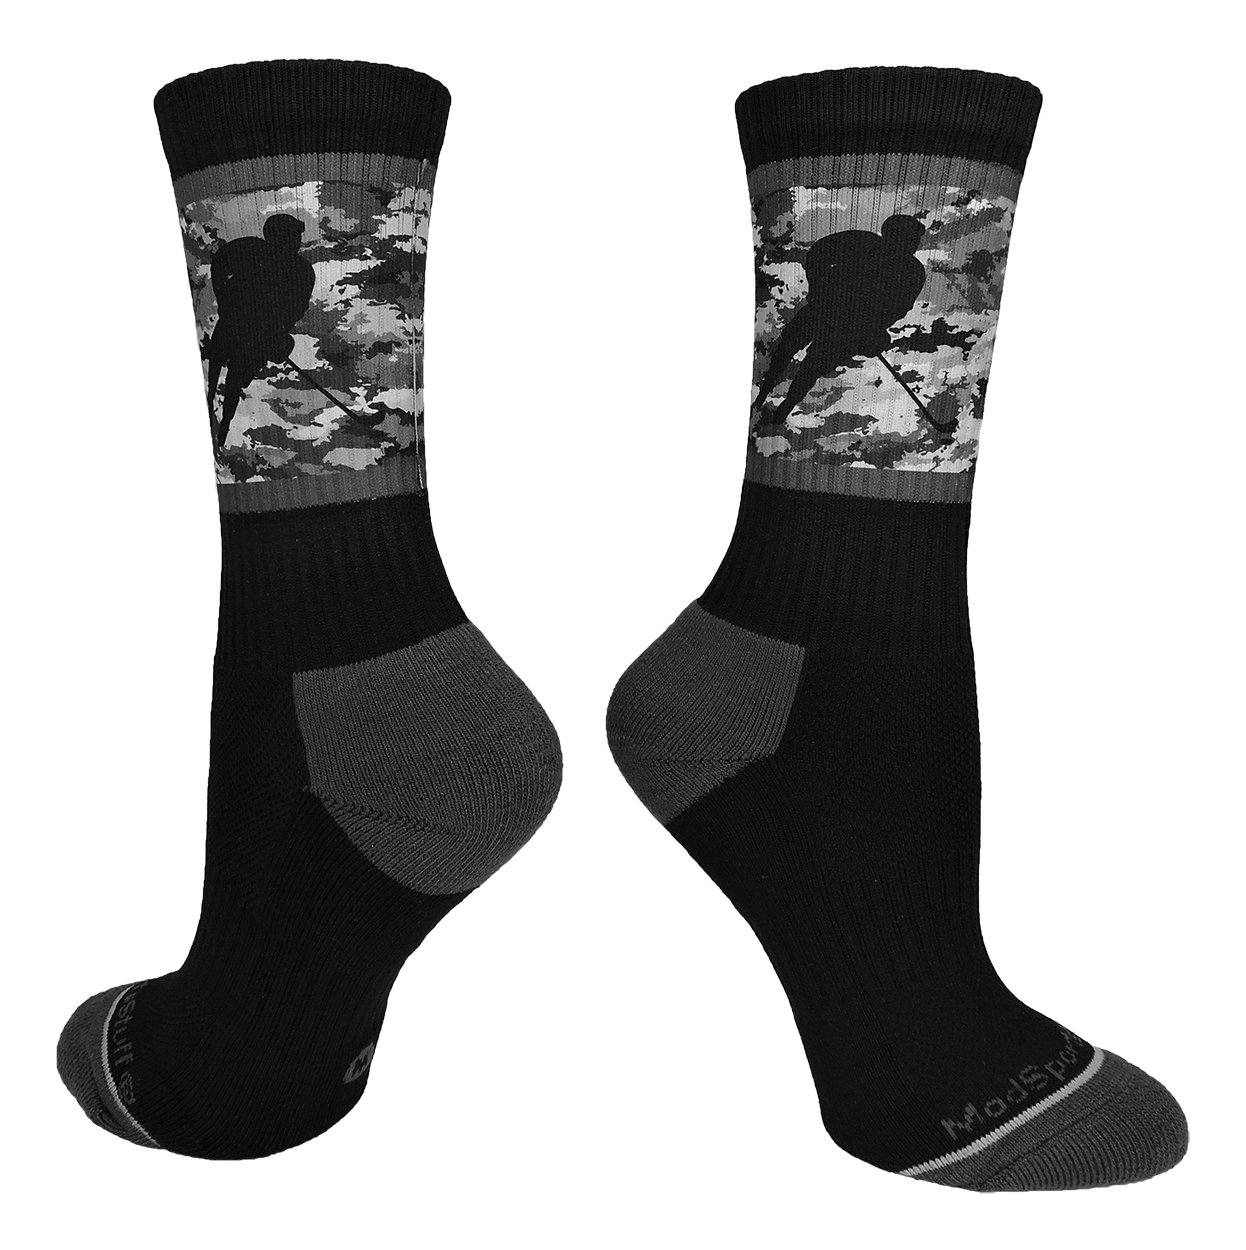 MadSportsStuff Hockey Player Crew Socks (Black/Graphite Camo, Small)